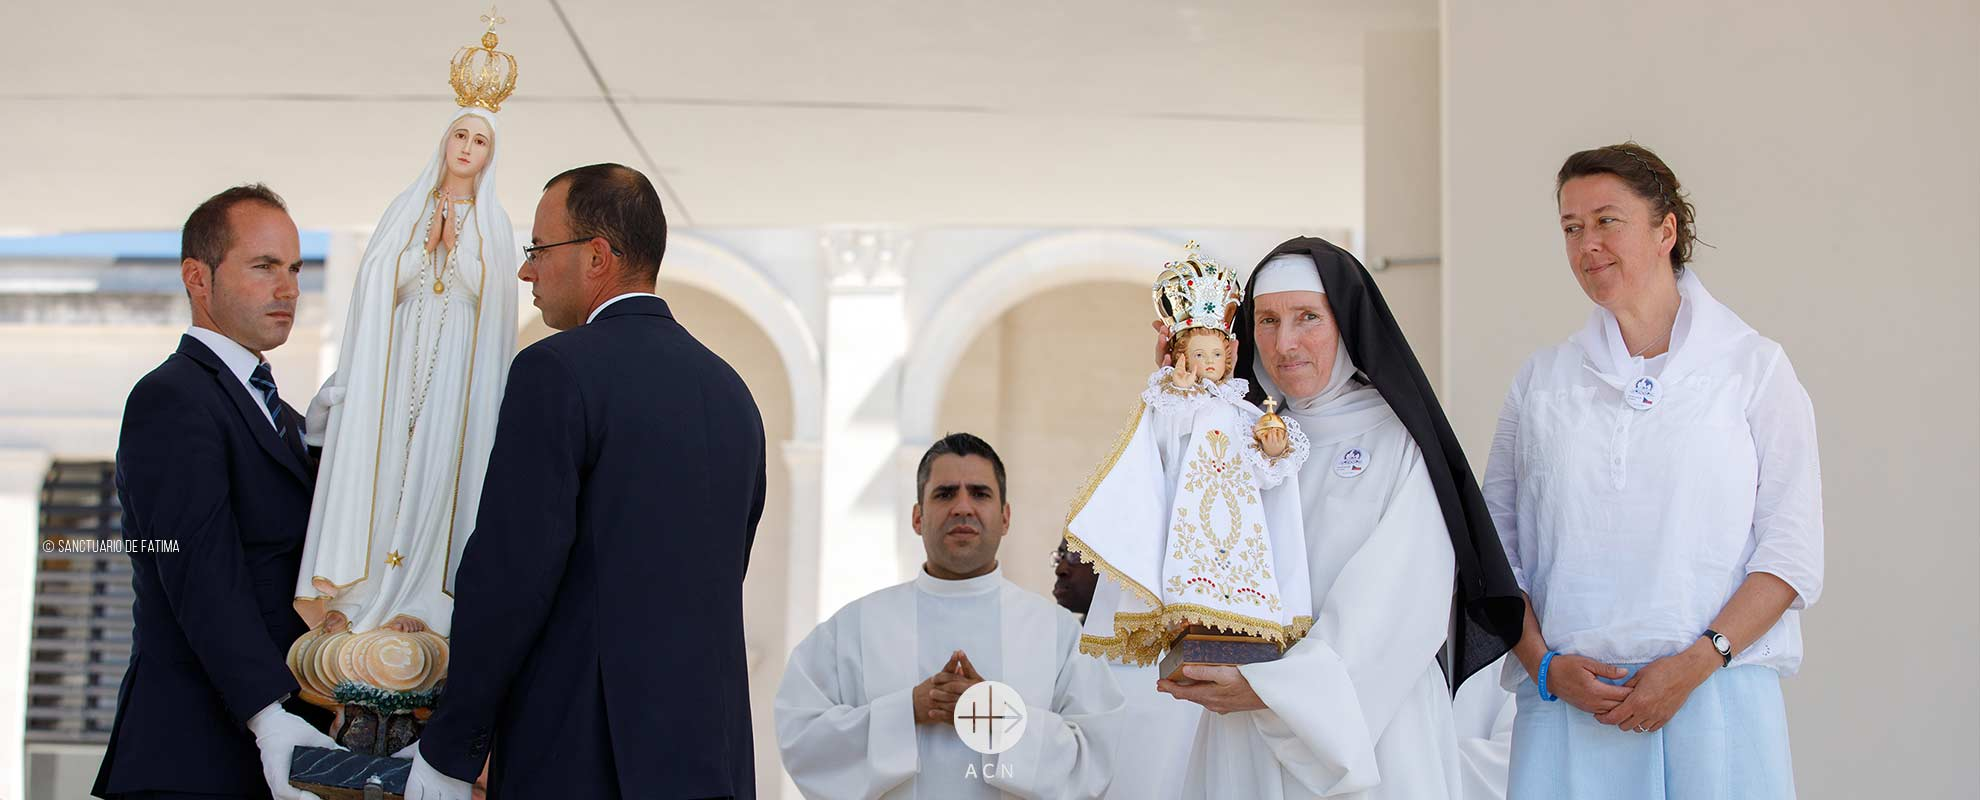 From Prague to Fatima and back to Prague – in the Czech republic the Fatima Year continues